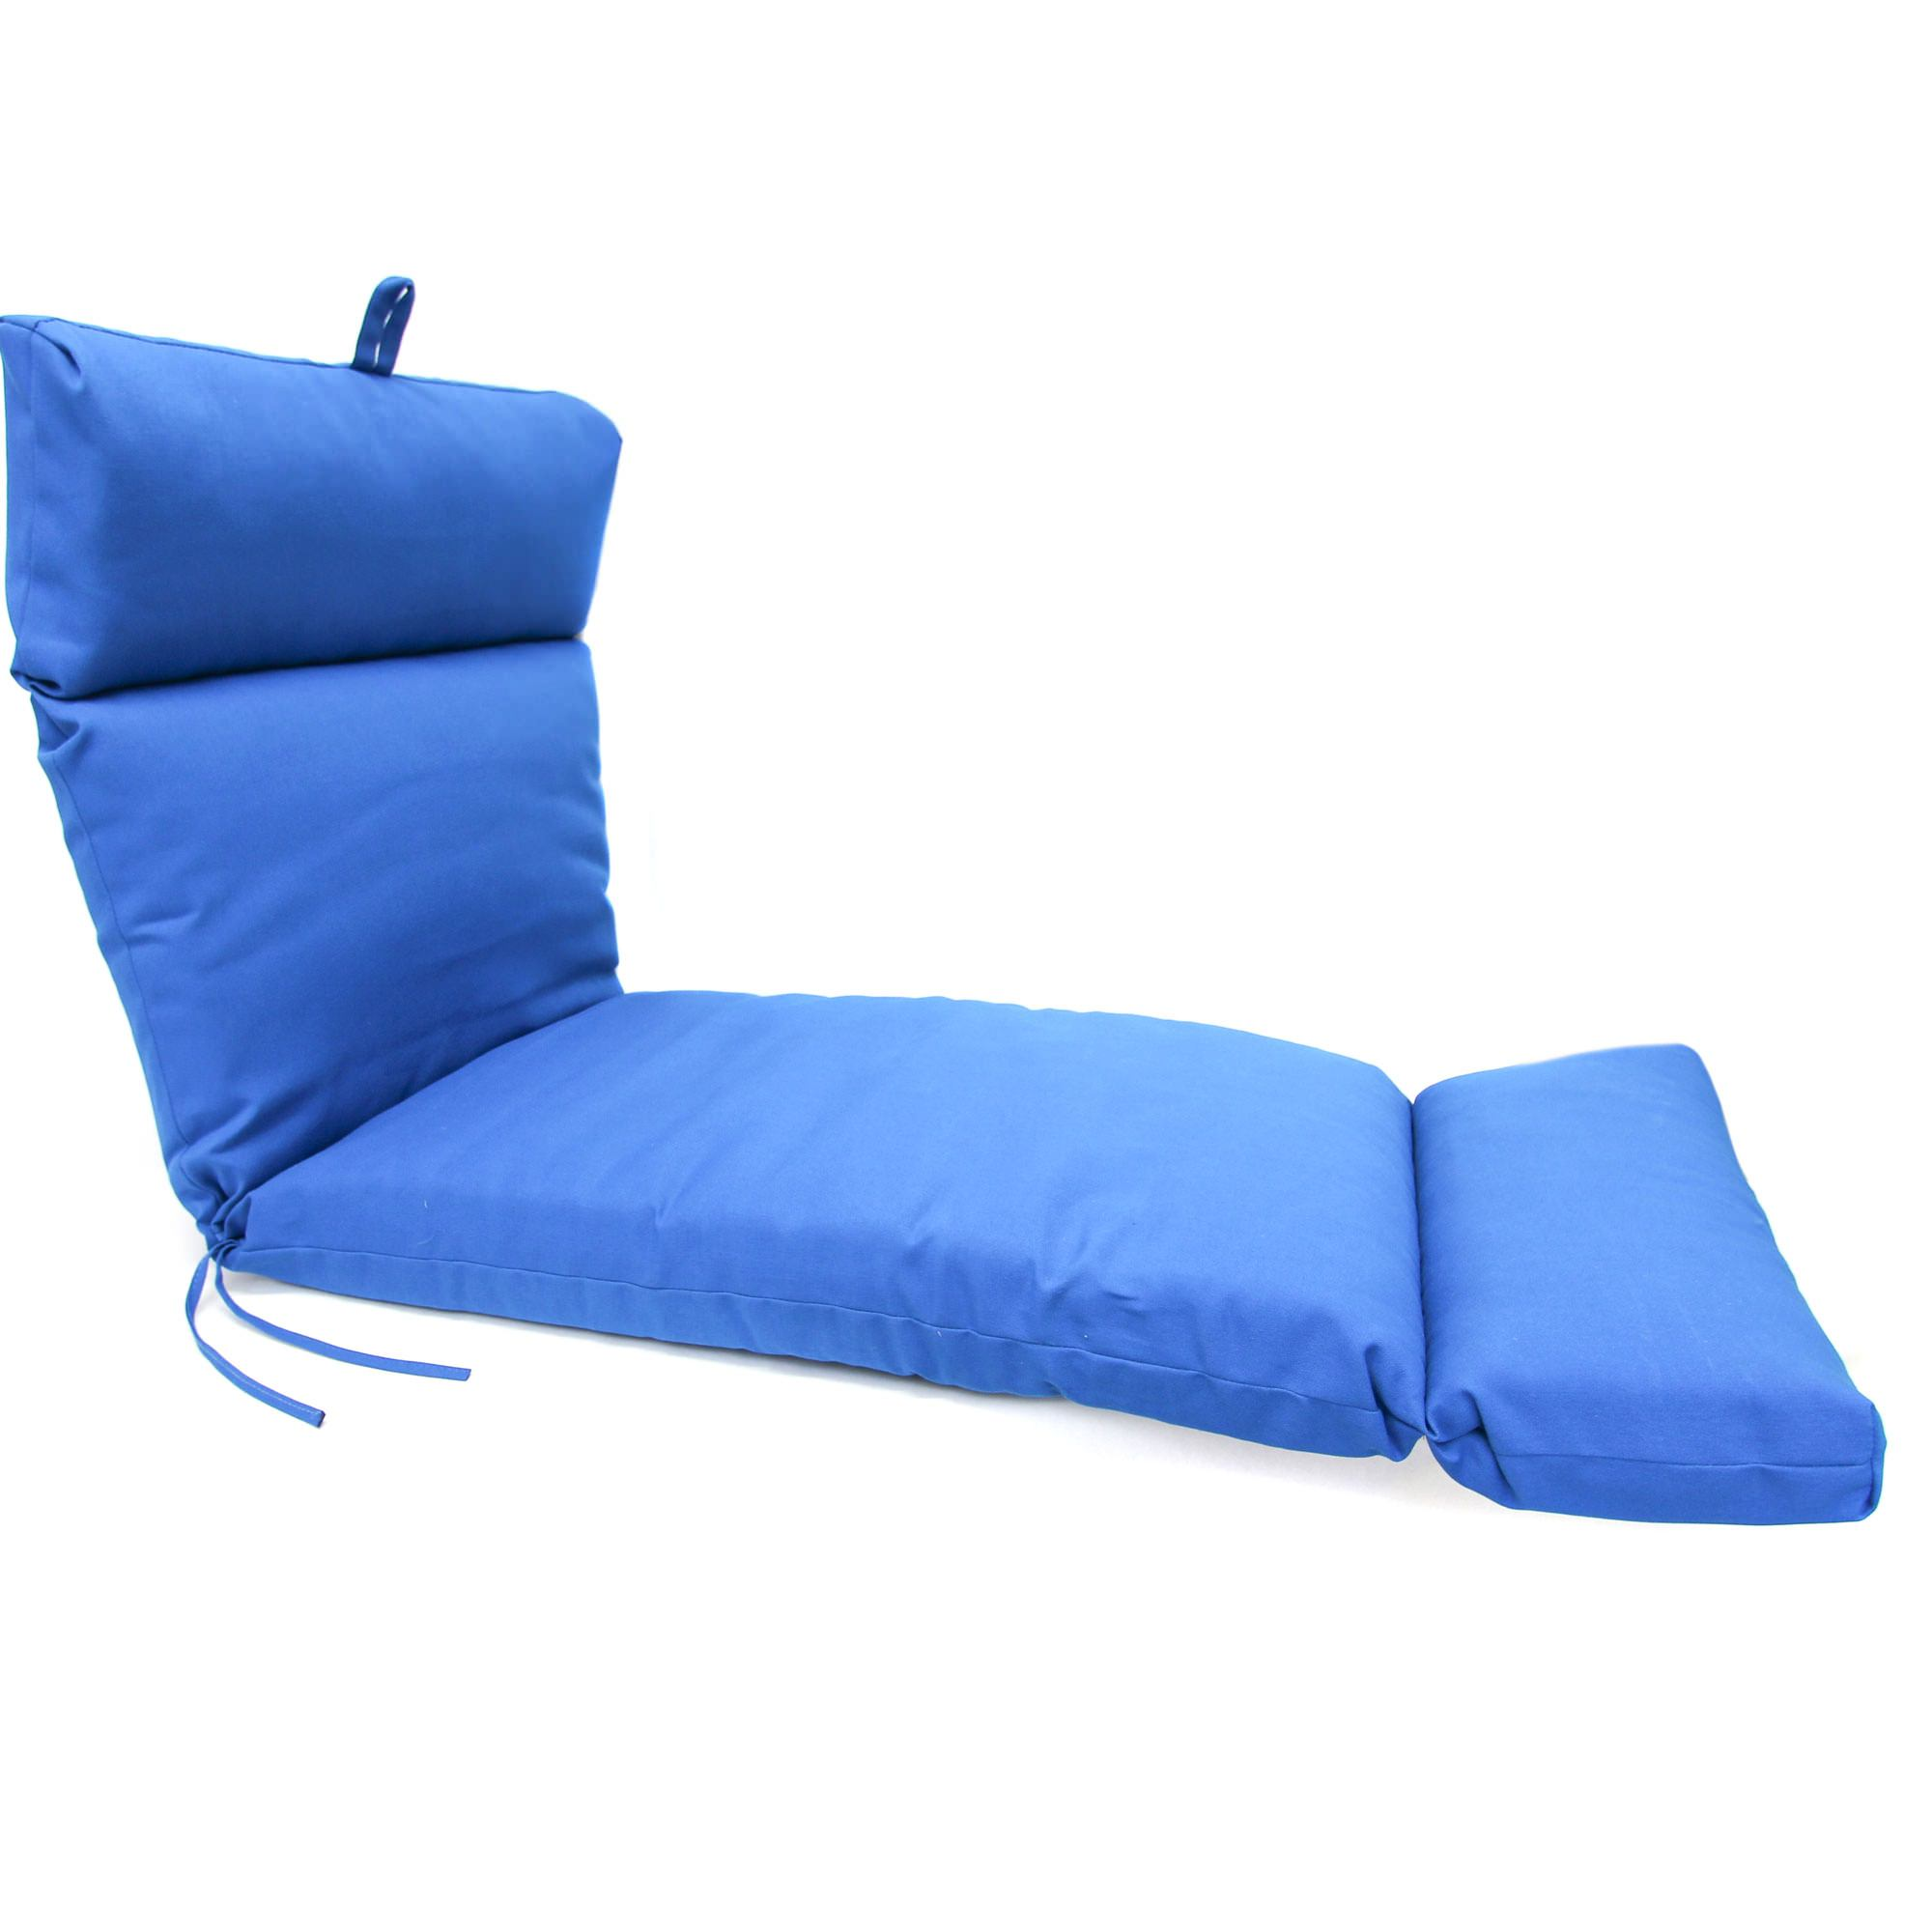 Pacific blue chaise lounge cushion dfohome for Blue chaise lounge cushions